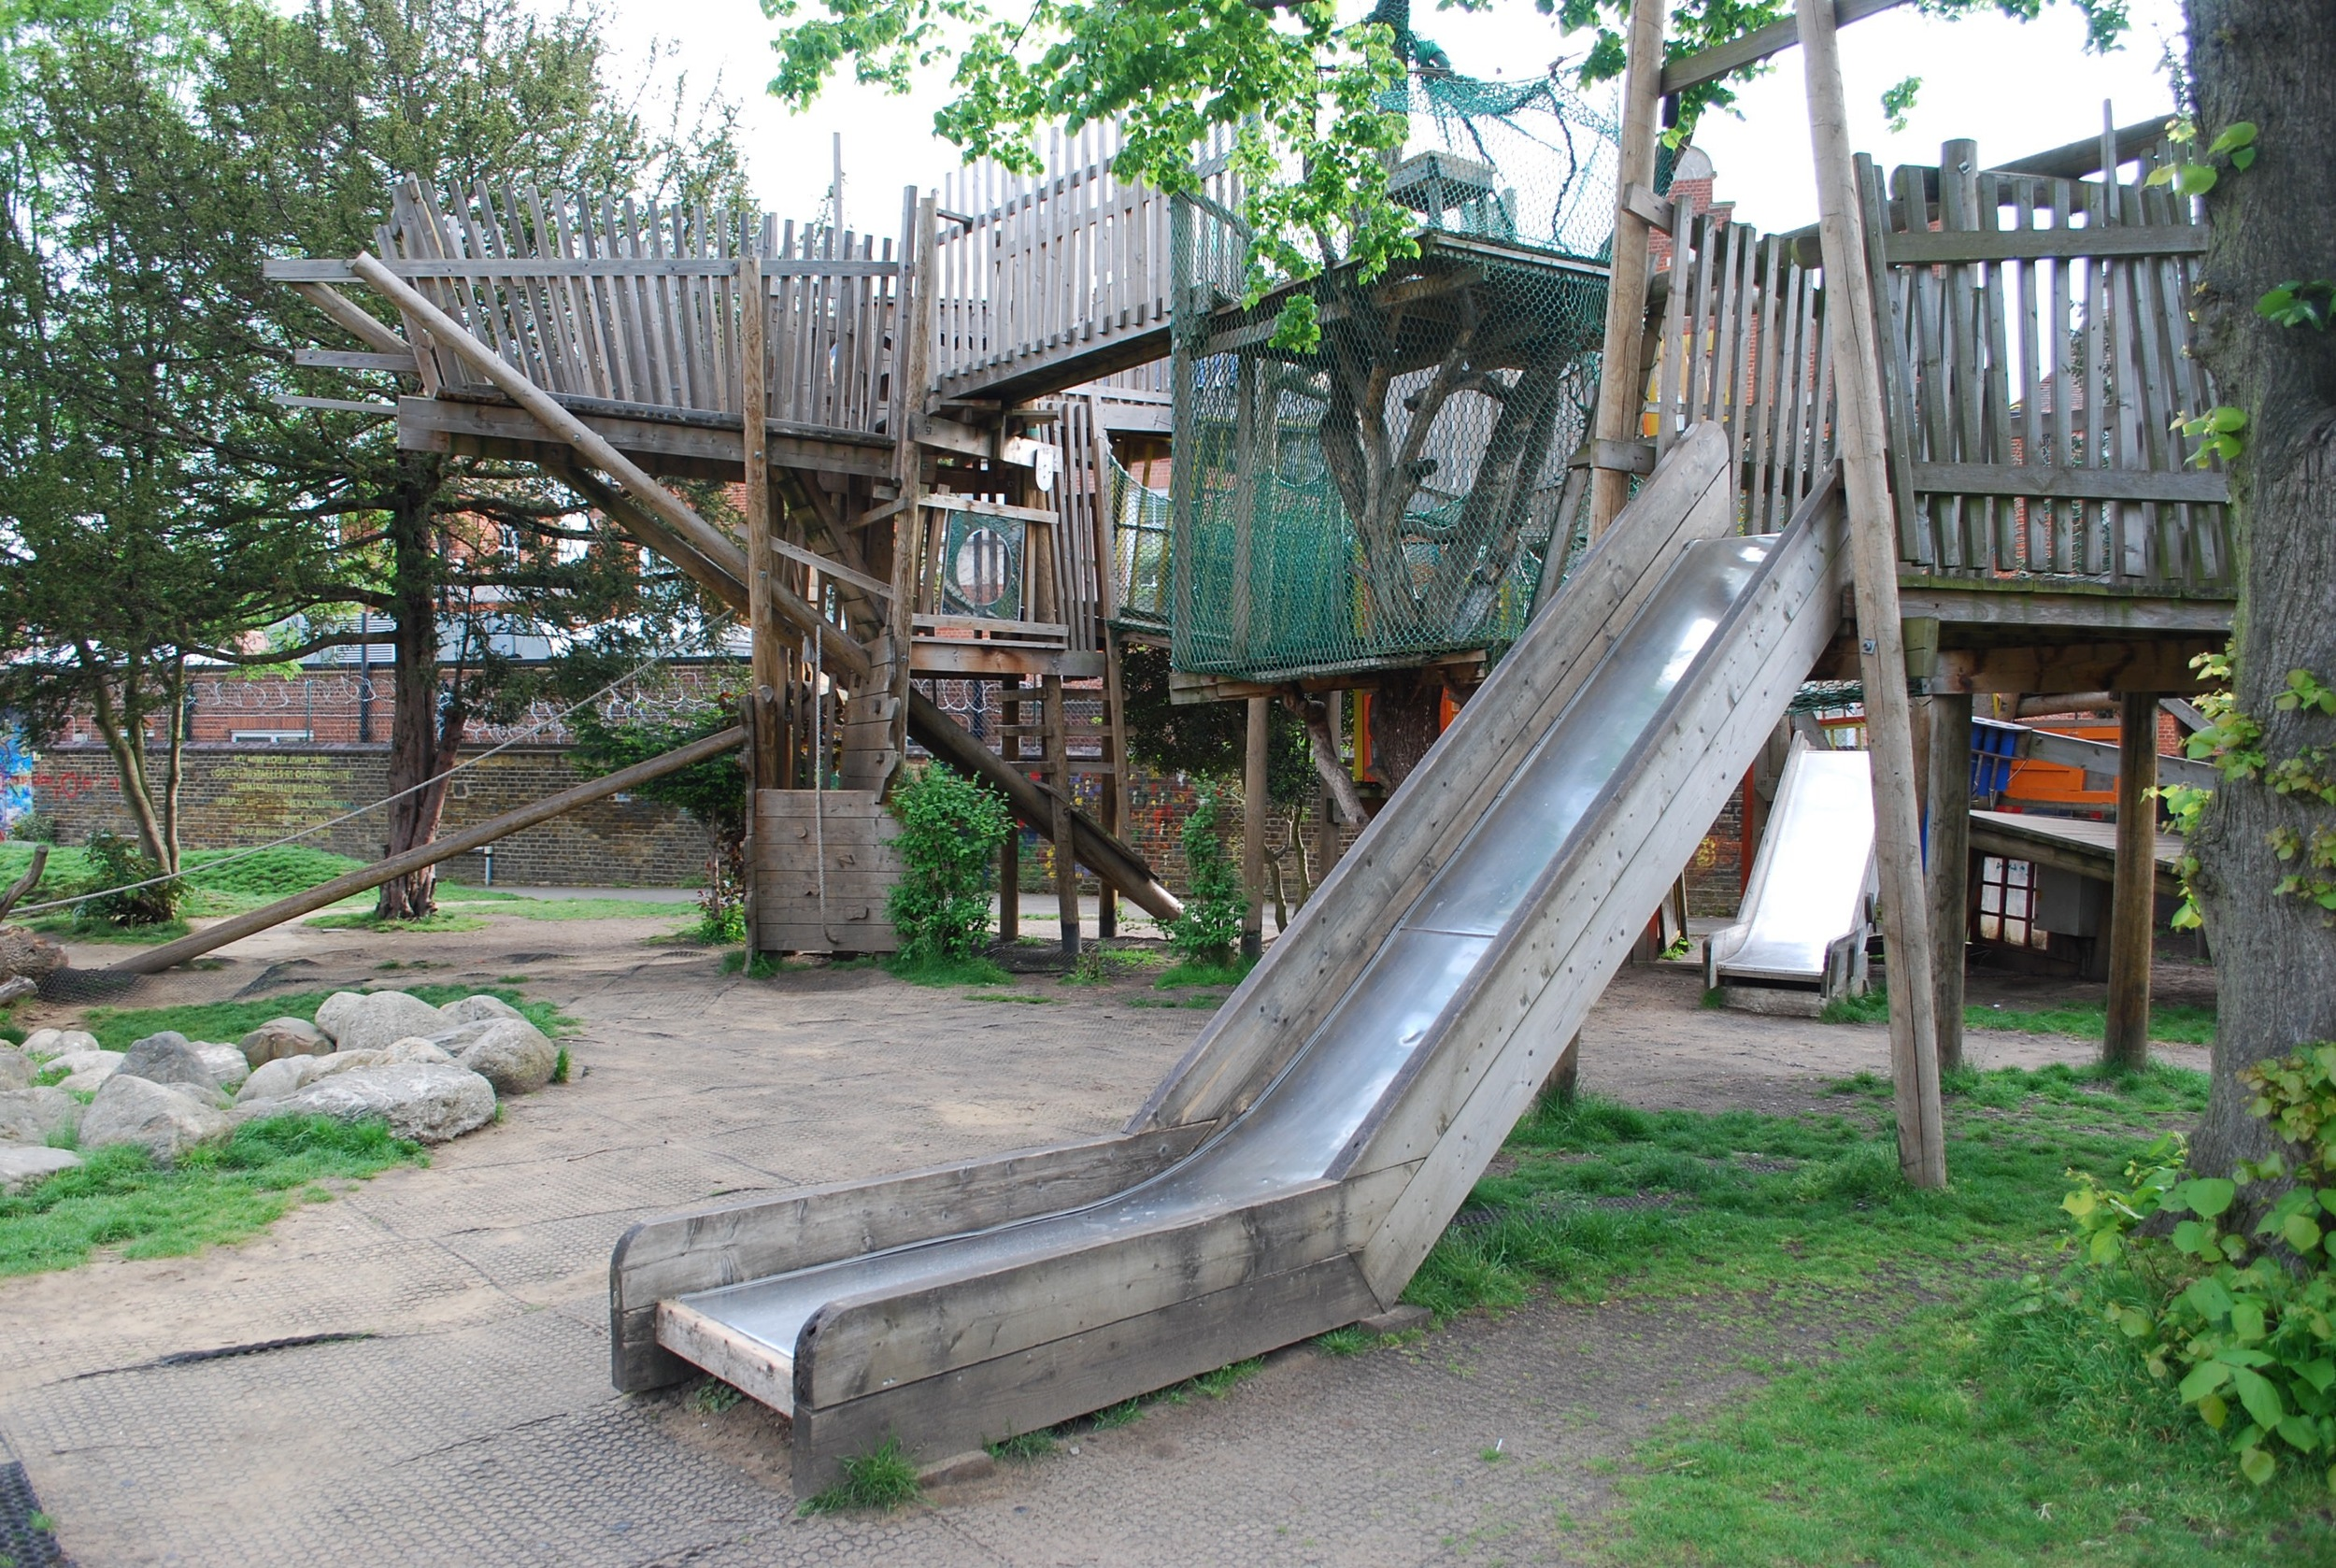 Custom built slides and forts at Kilburn Grange Park